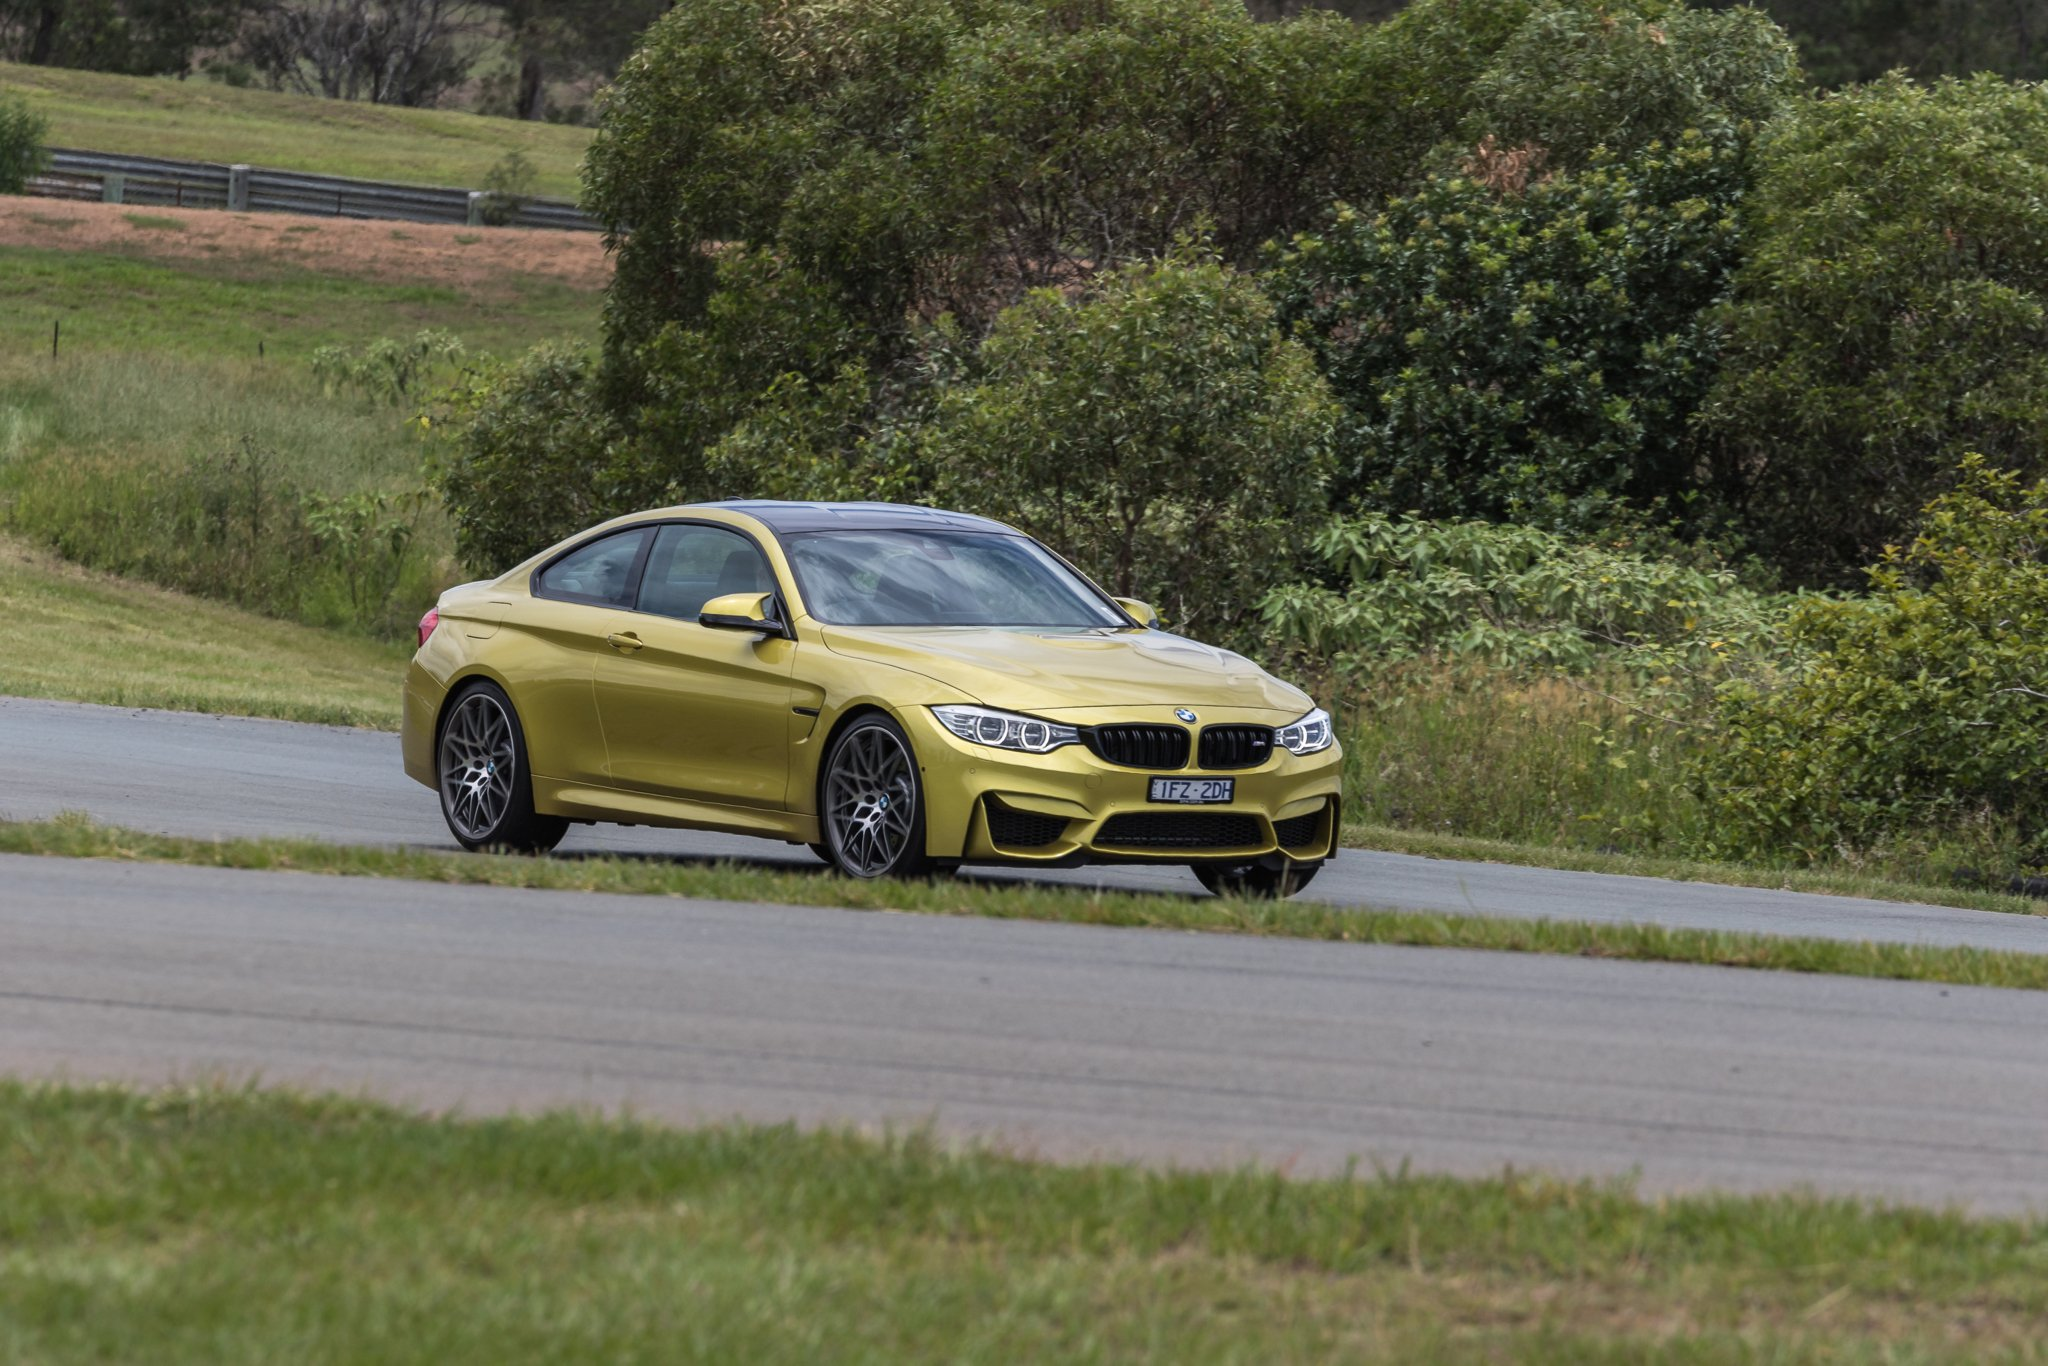 Bmw m4 coupe vs mercedes amg c63 s coupe photo comparison - Bmw M4 Competition V Mercedes Amg C63 S Coupe Track